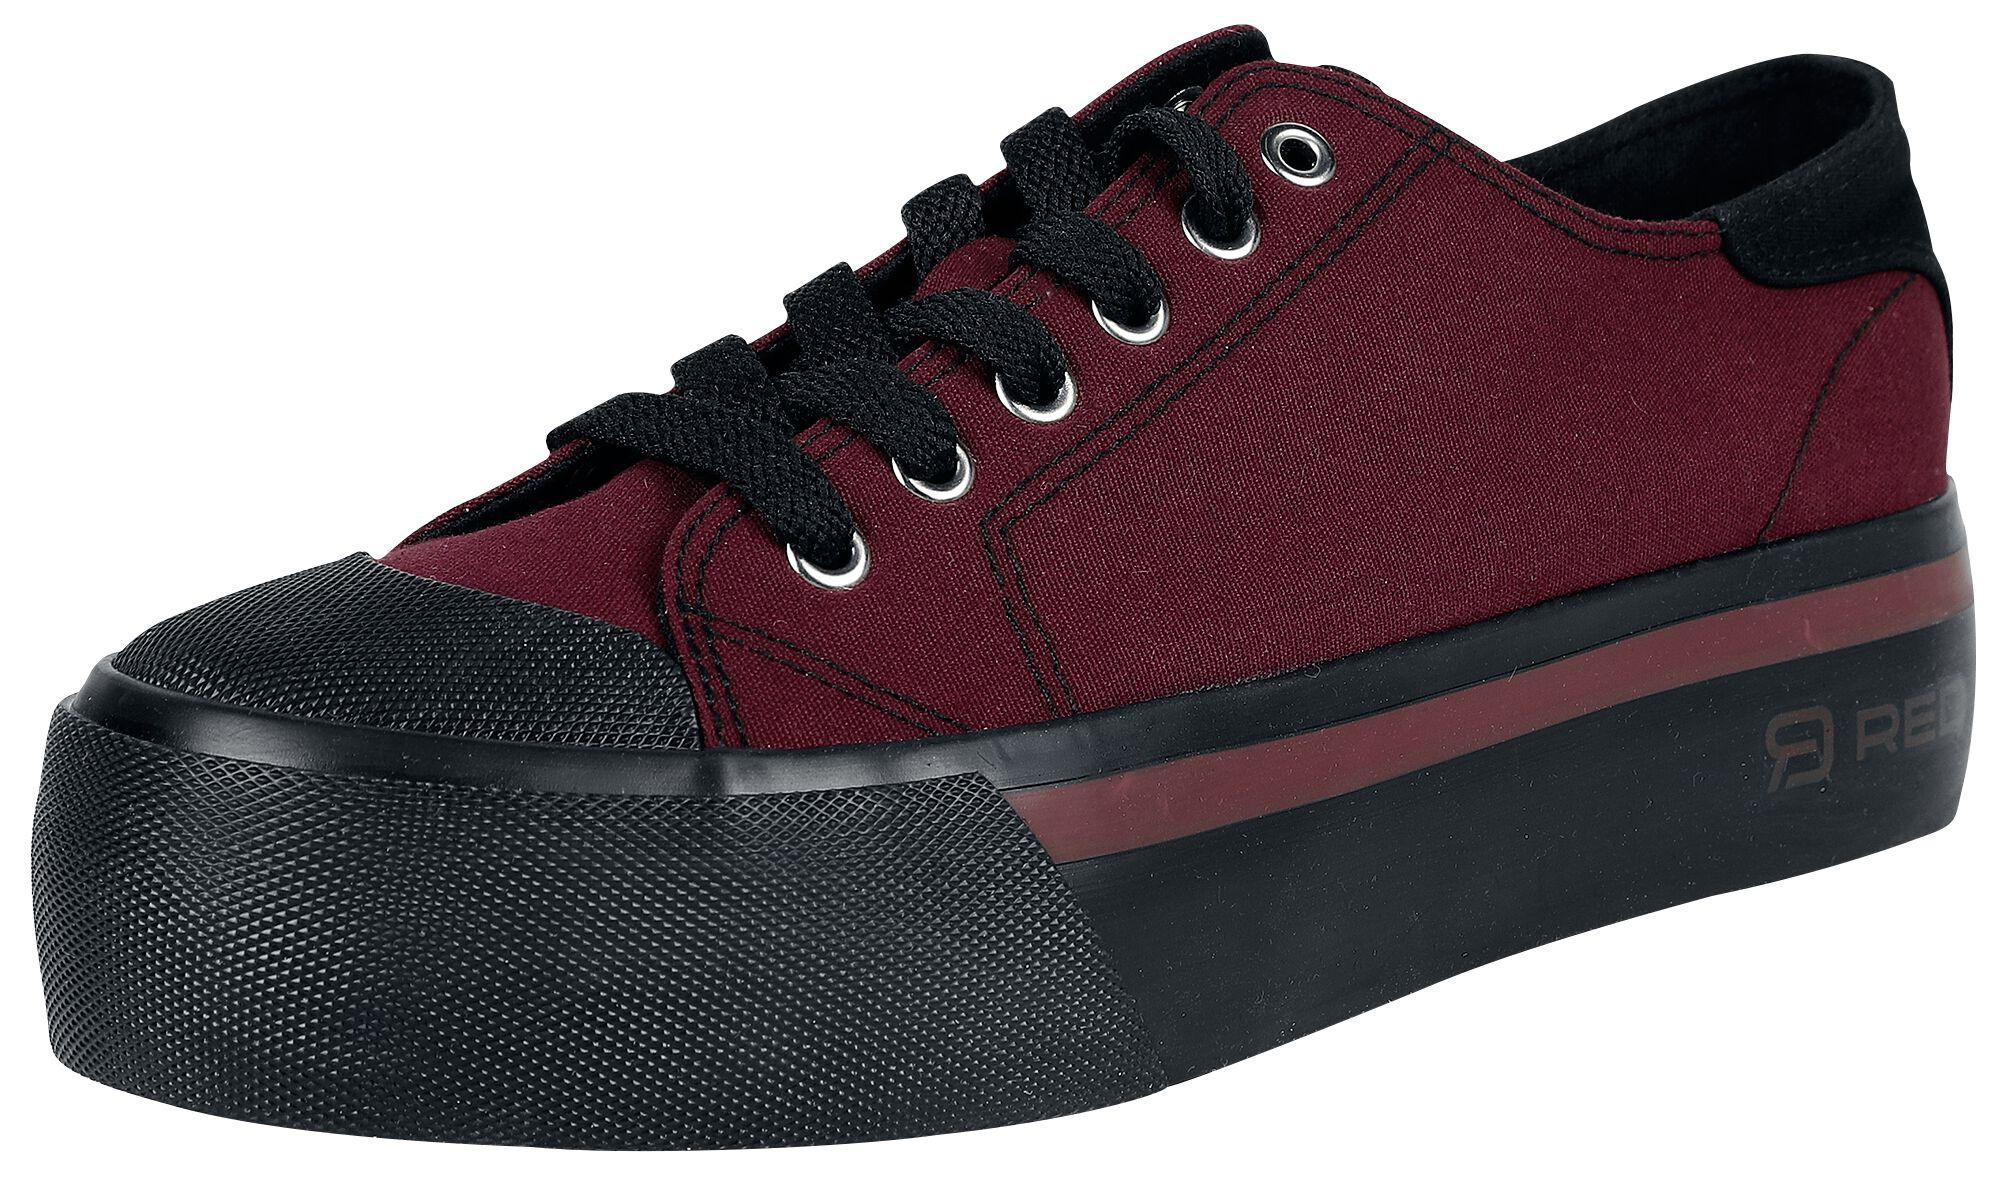 RED by EMP Dunkelrote Sneaker mit Plateau-Sohle Sneaker dunkelrot M408415